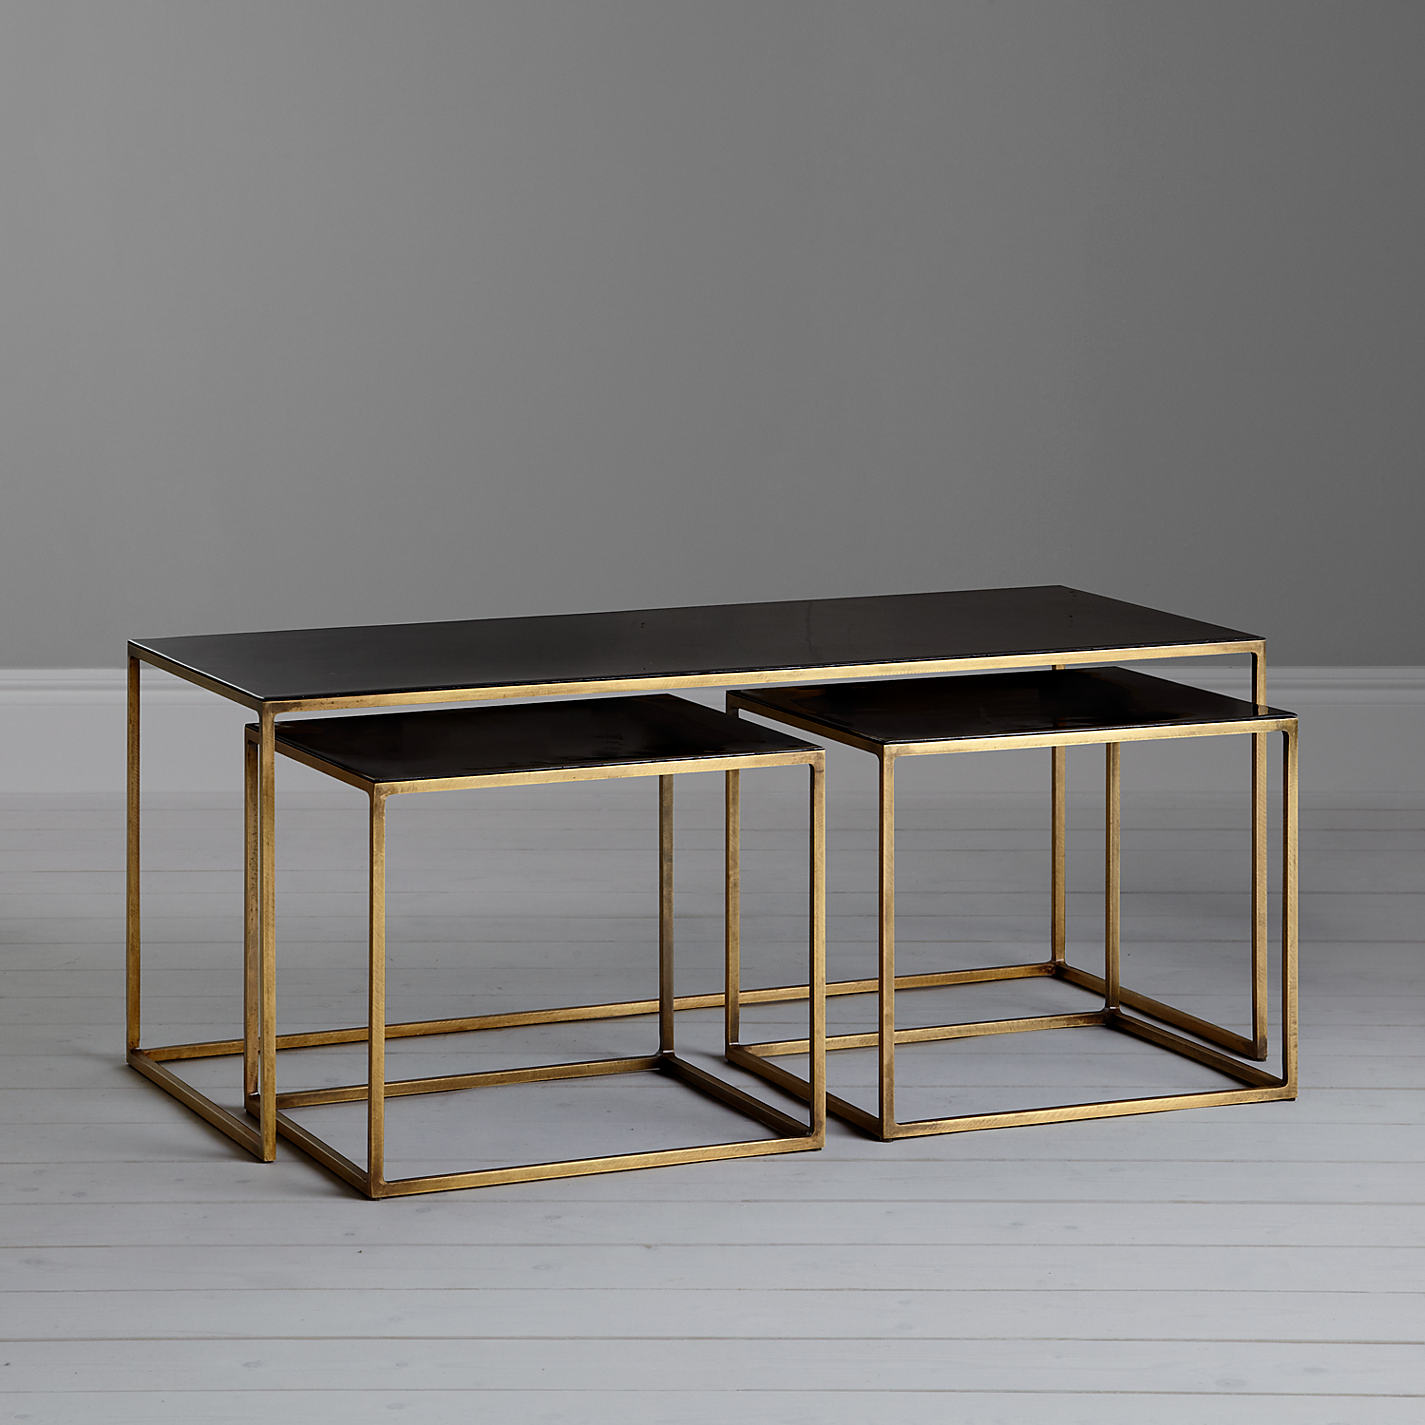 Folding side table john lewis -  Buy Content By Terence Conran Coffee Black Enamel Table And 2 Side Tables Online At Johnlewis